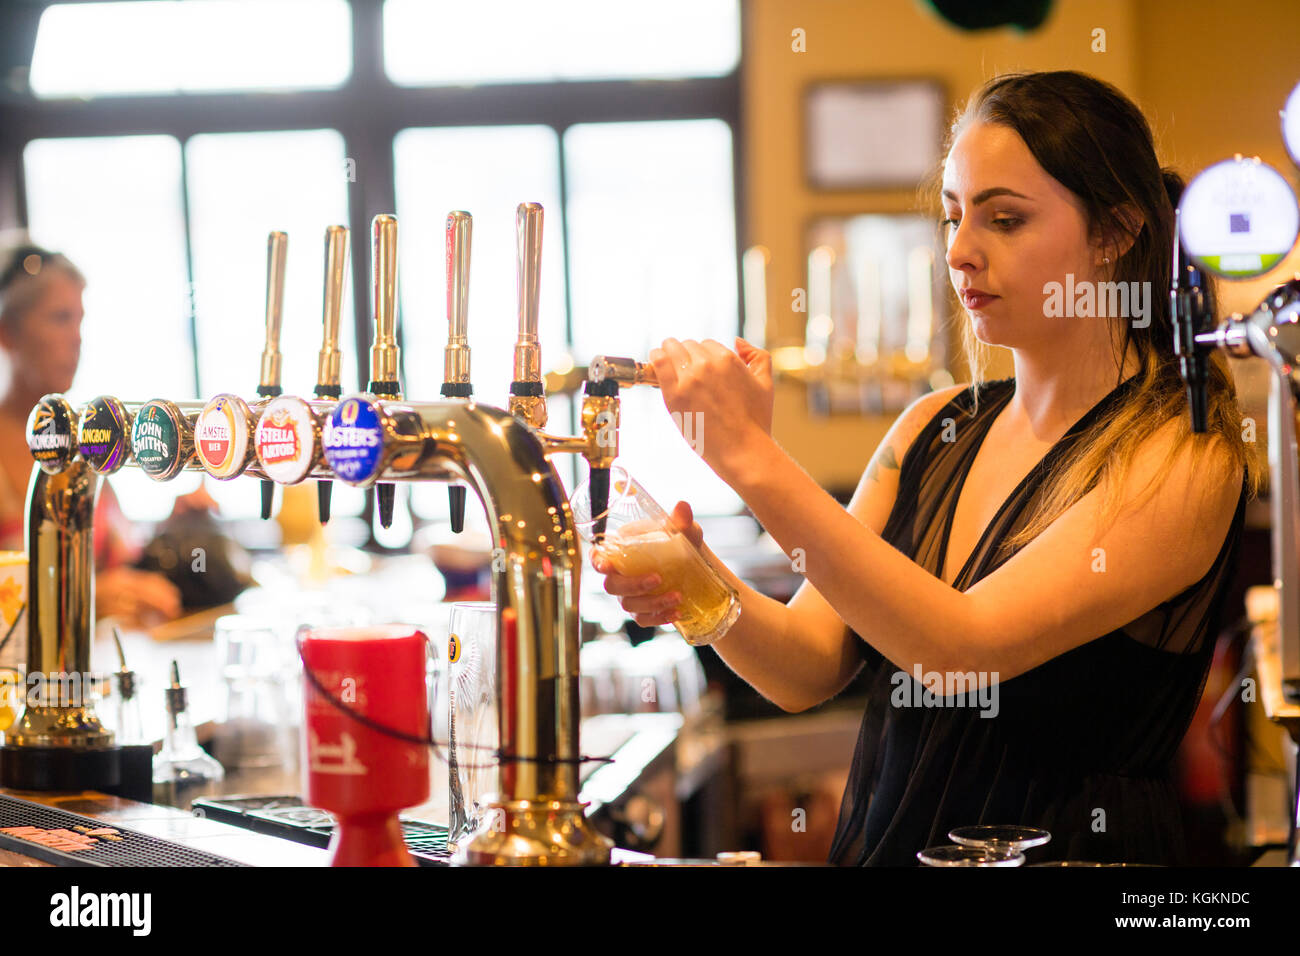 A barmaid bar worker pouring a pint of draught lager beer in a bar pub club UK - Stock Image